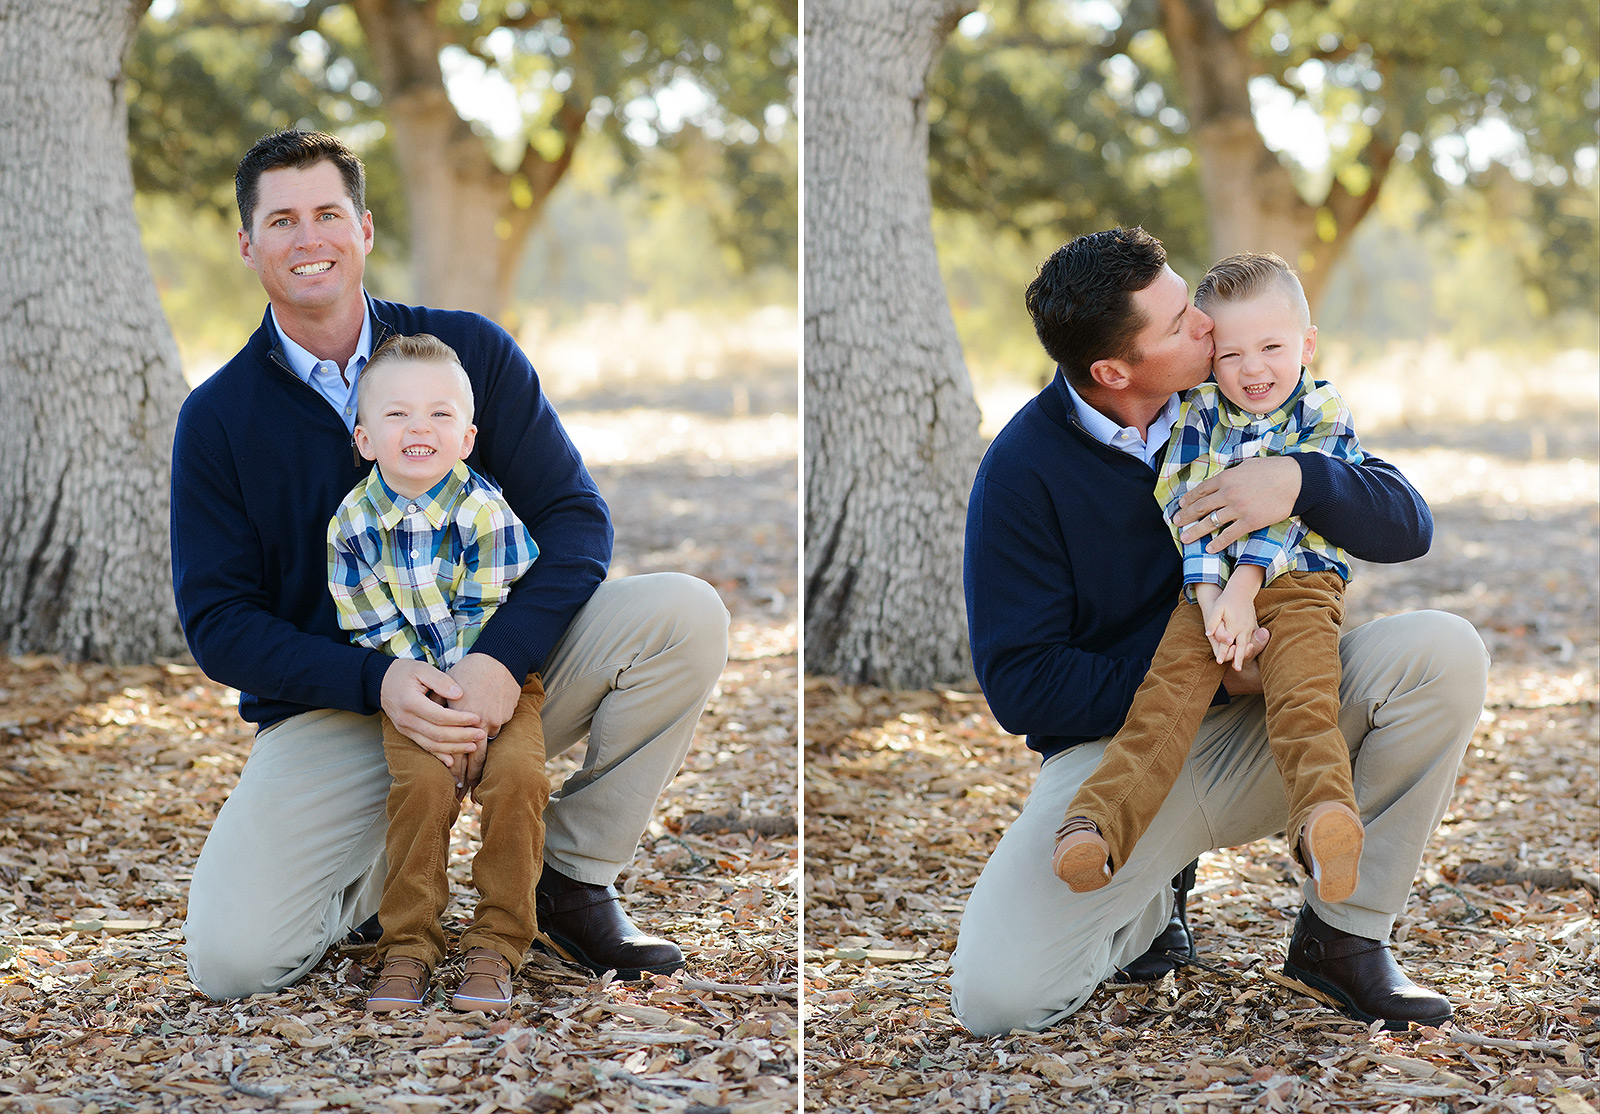 Father and Son Hugging and Kissing on Fall Leaves